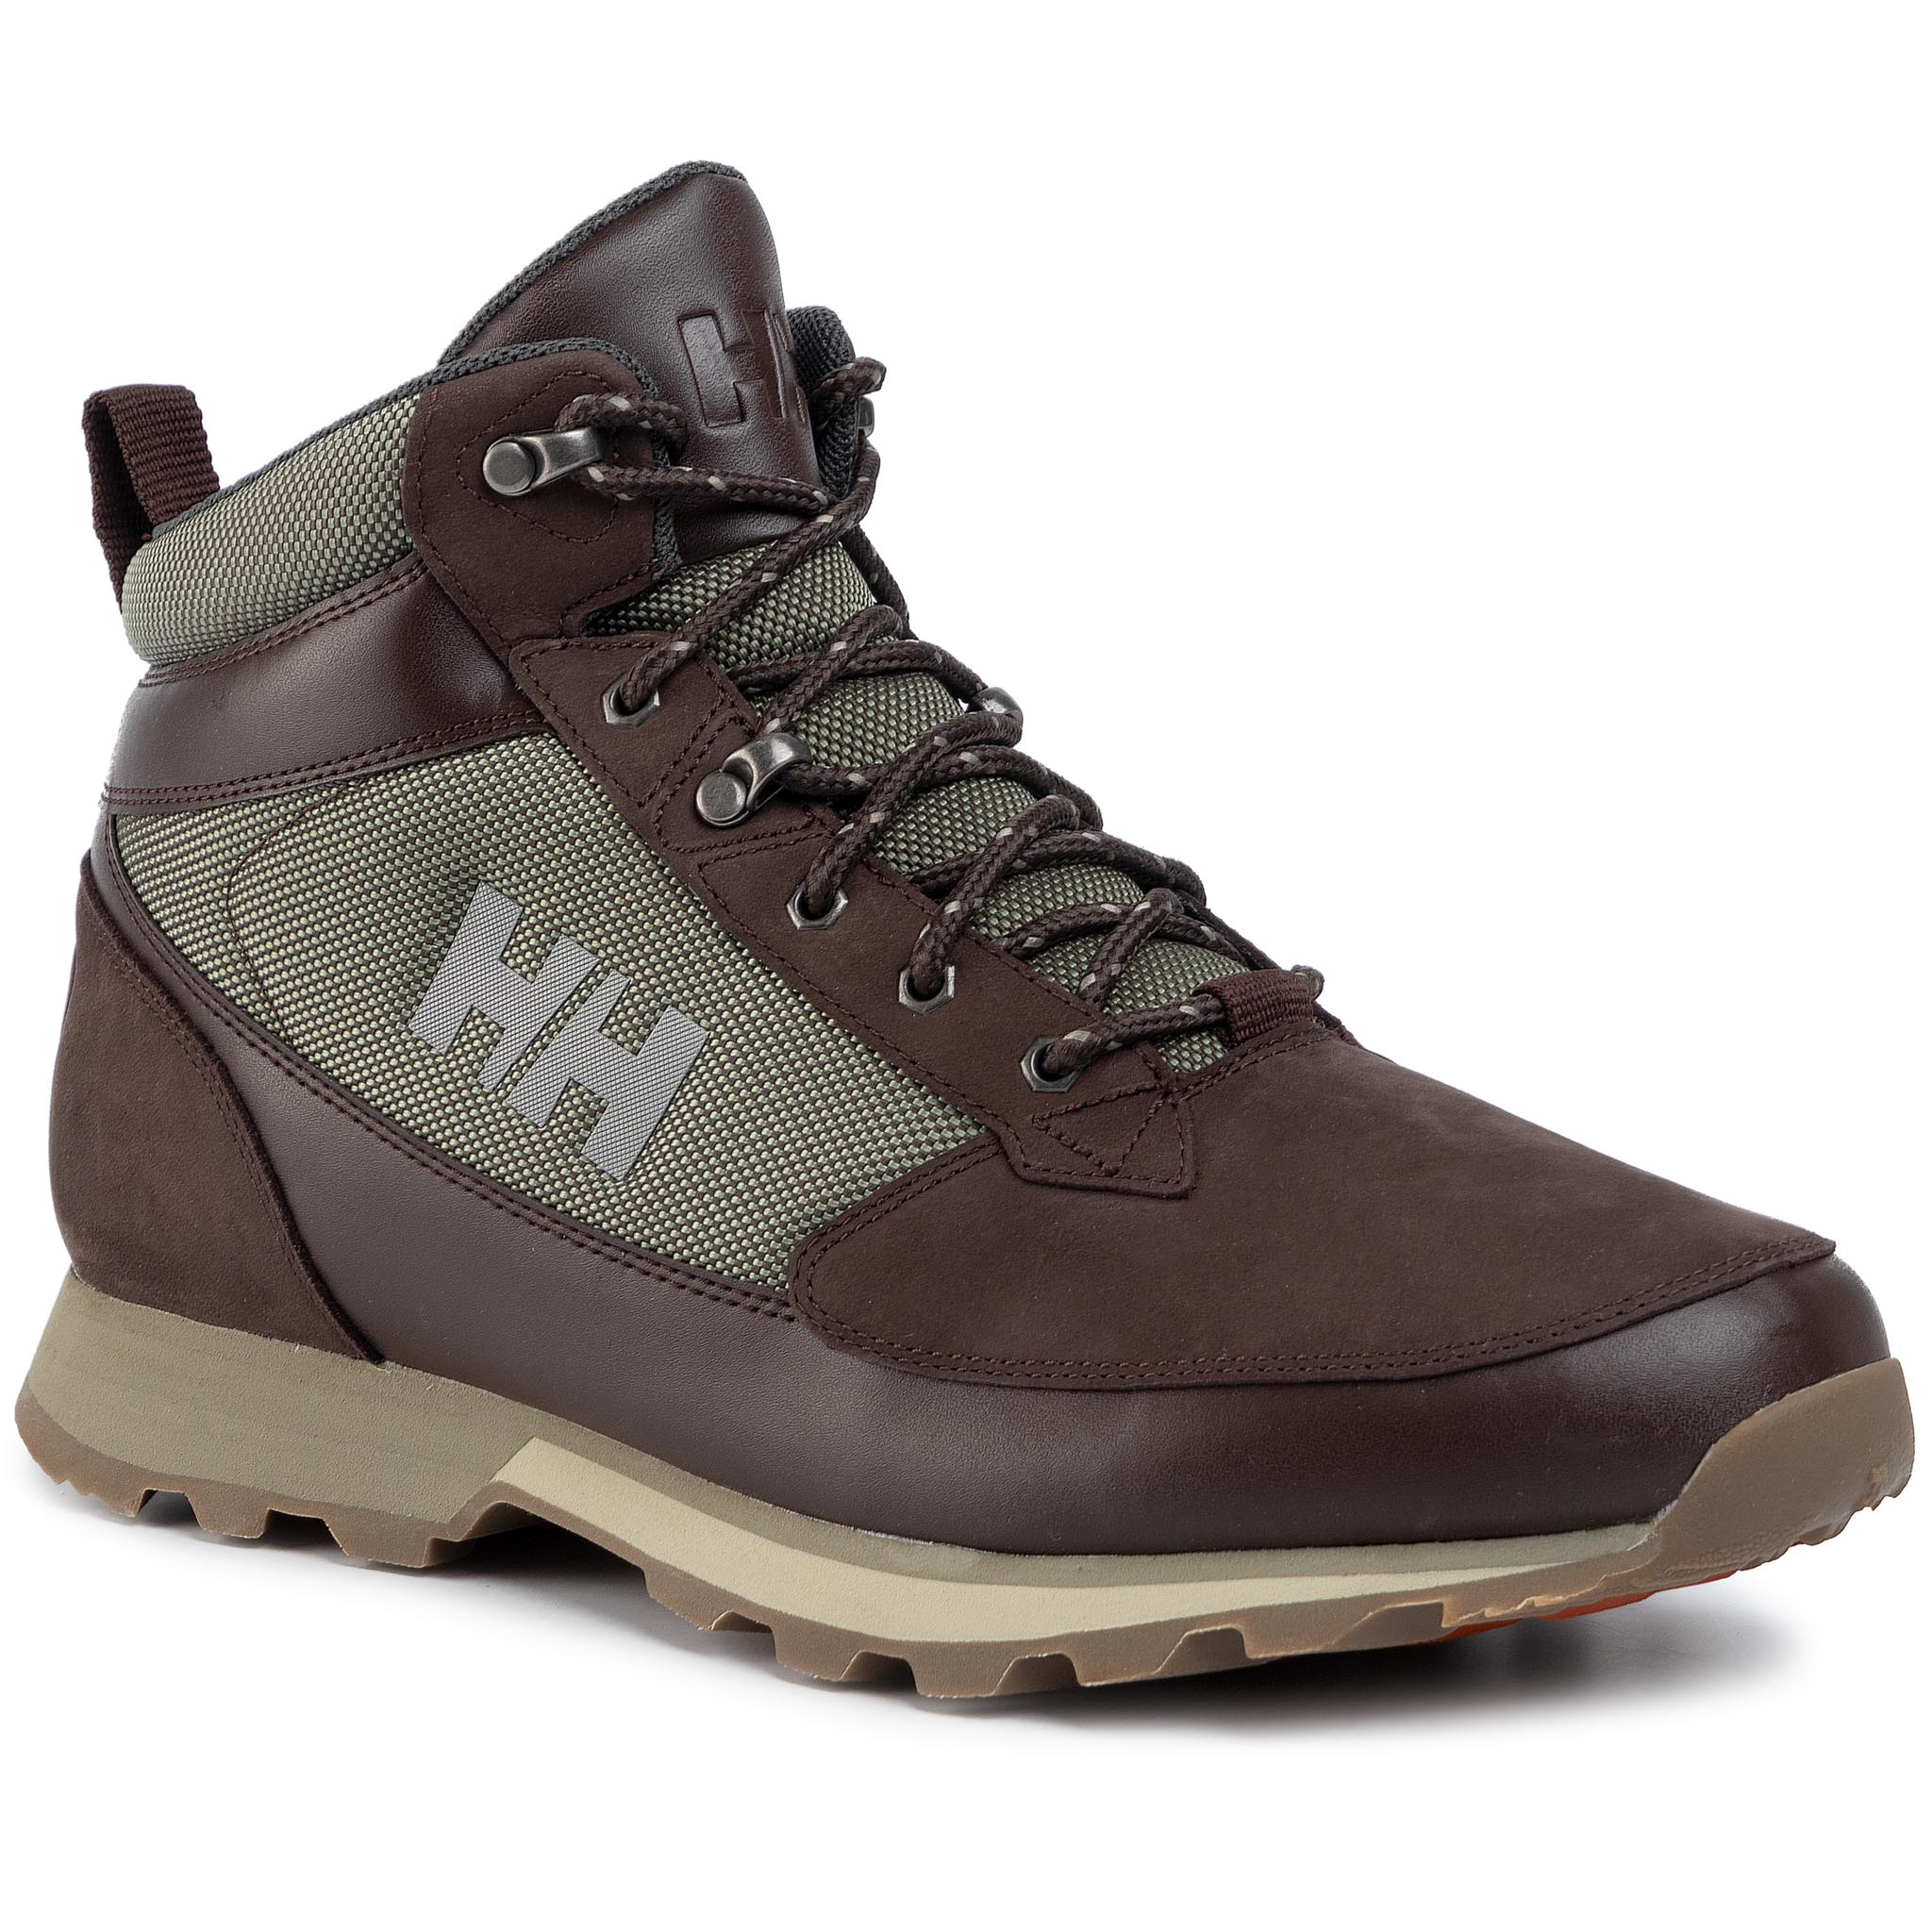 Trappers Helly Hansen - Chilcotin 114-27.710 Coffee Bean/ Beluga/ Mermaid imagine epantofi.ro